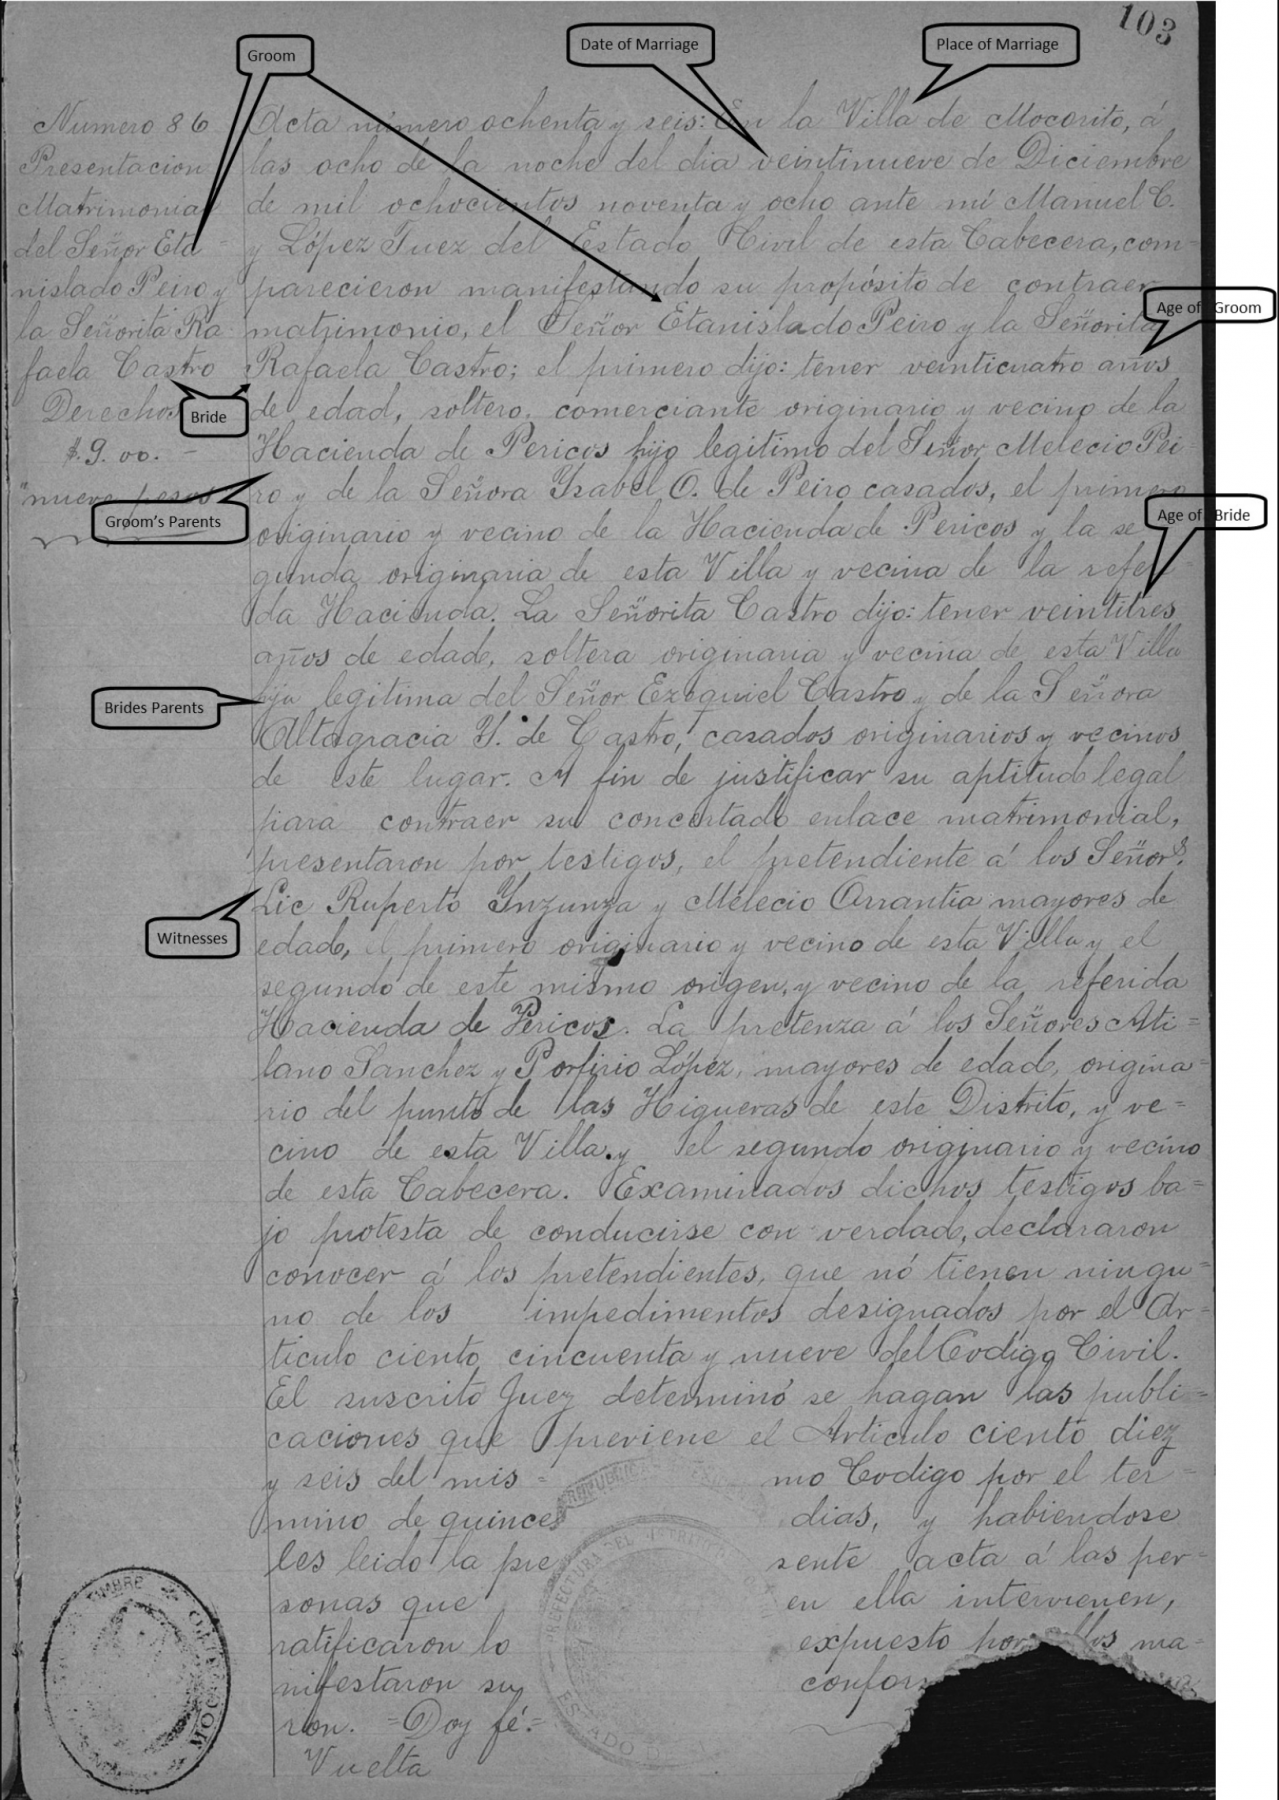 How to Read Mexican Marriage Records in English - Handwritten Mexican Marriage records at FamilySearch